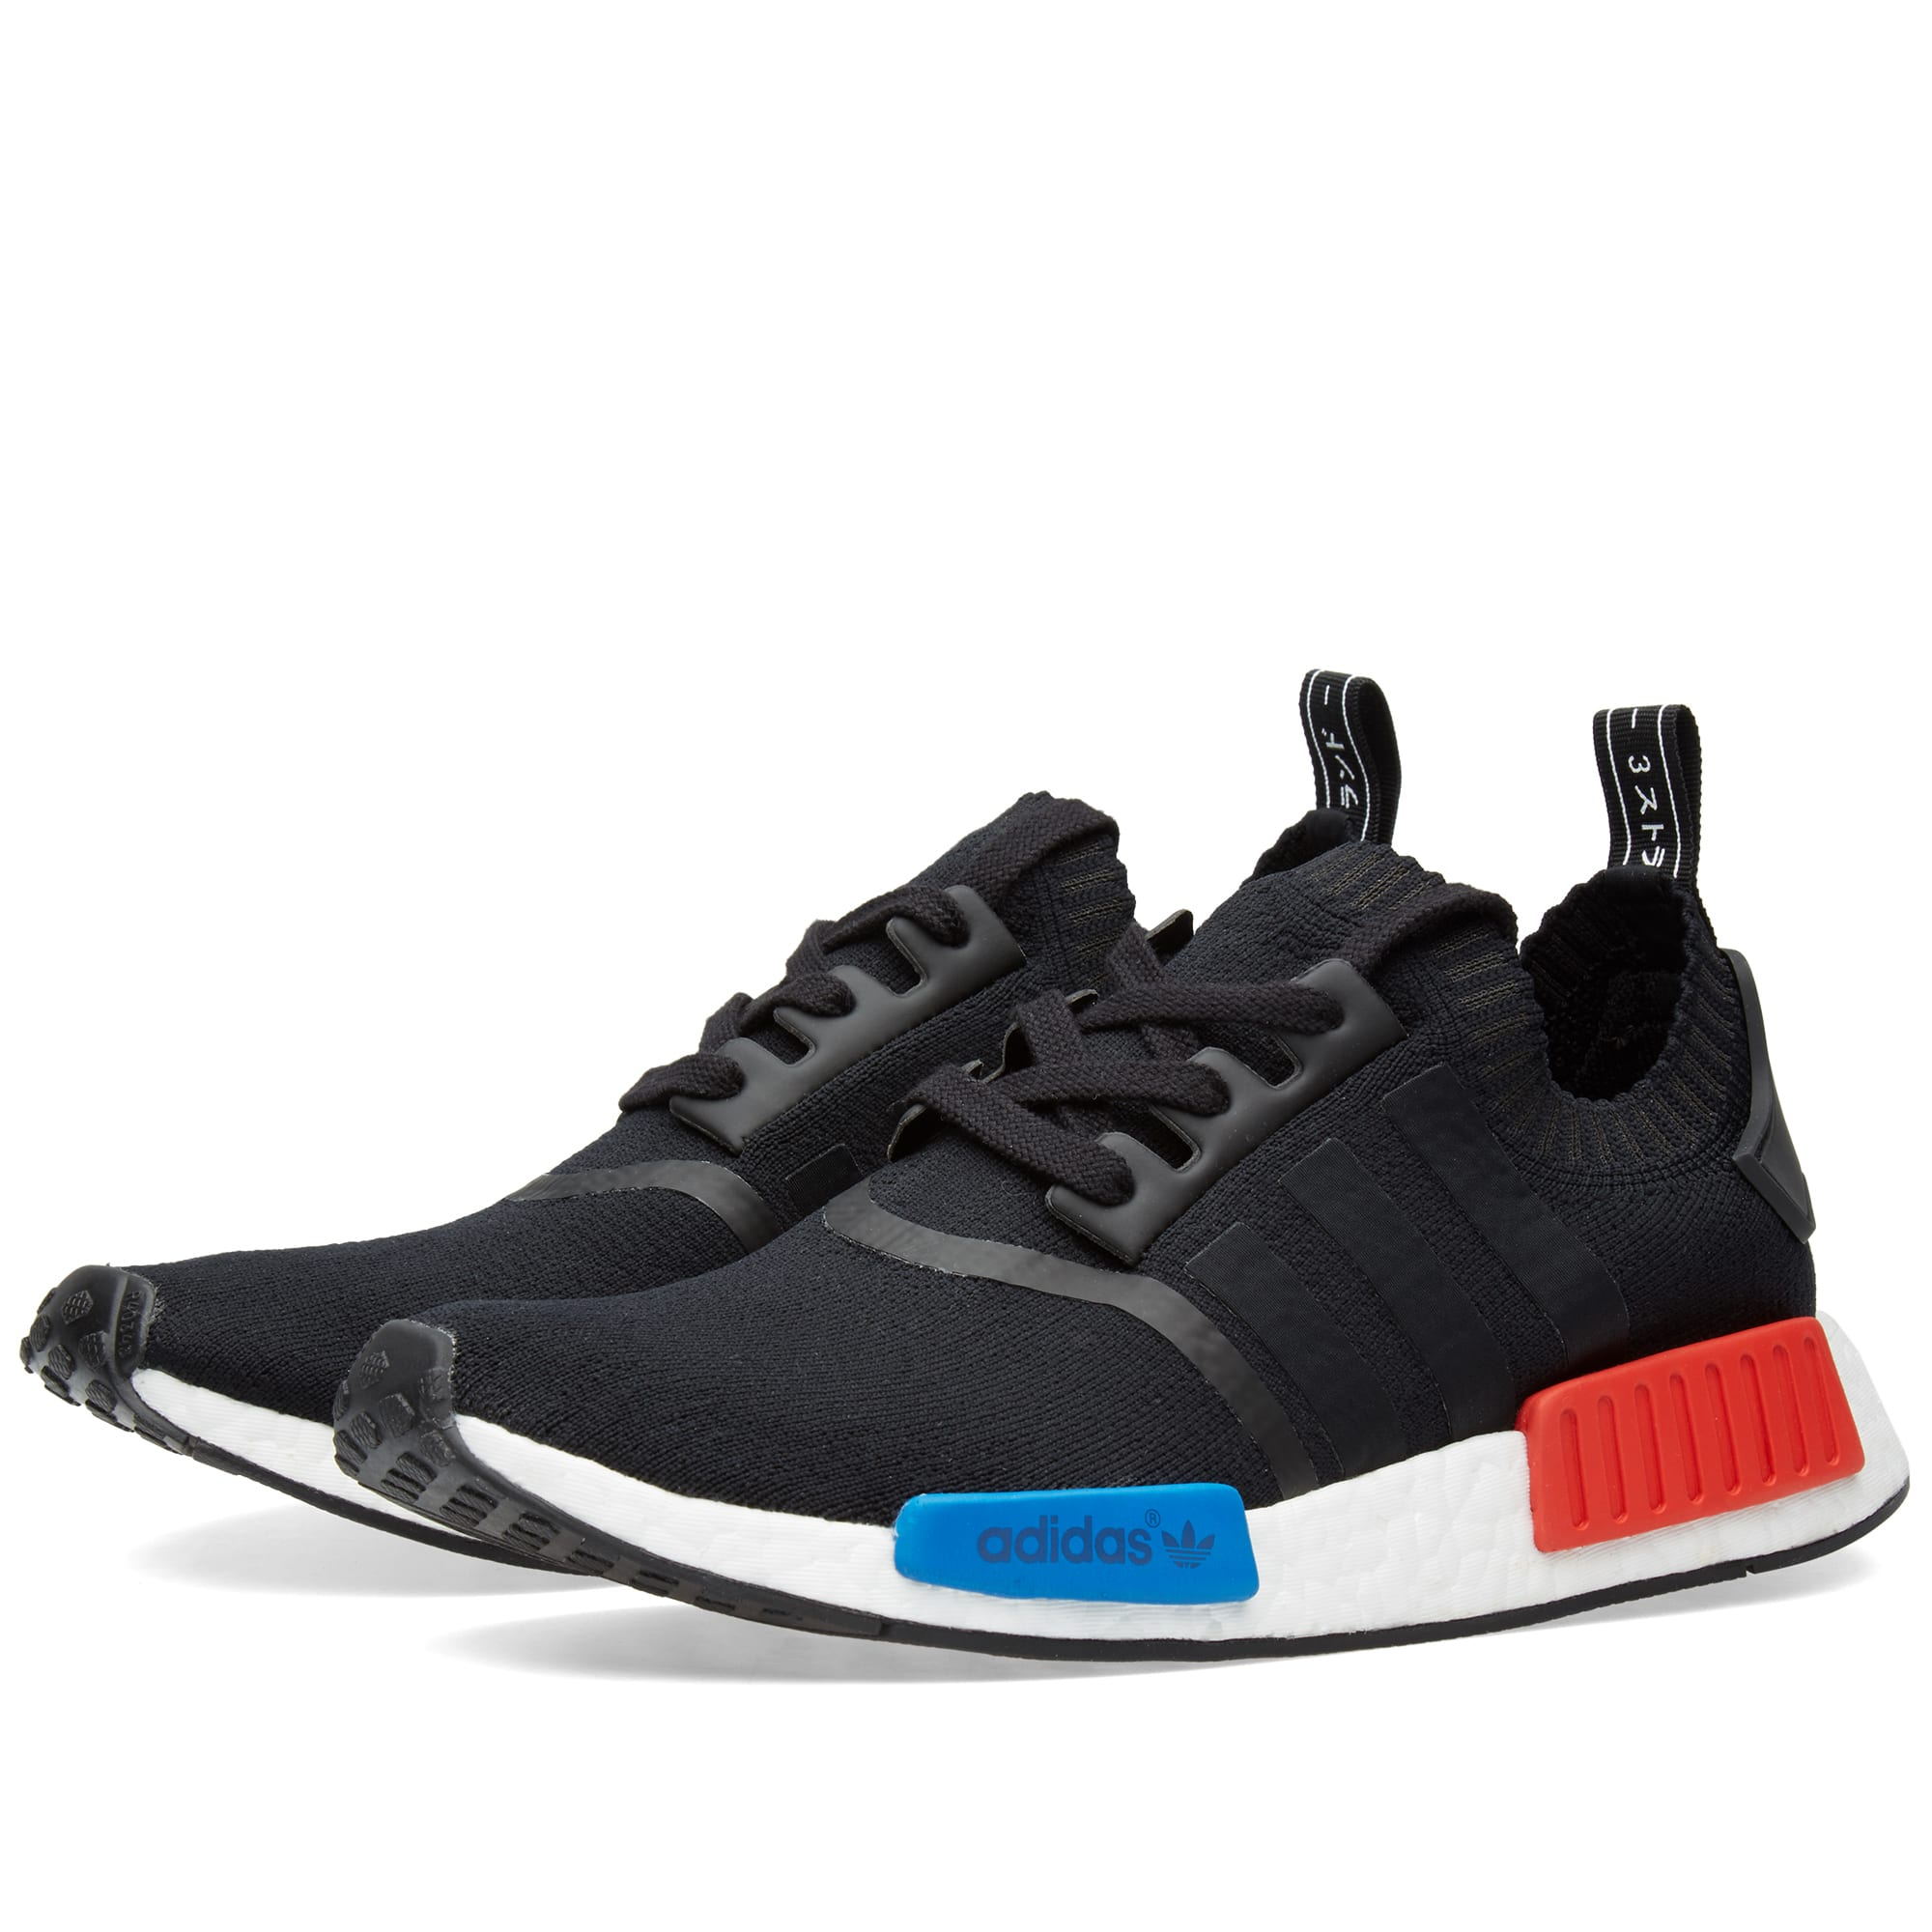 Green NMD XR1 adidas US